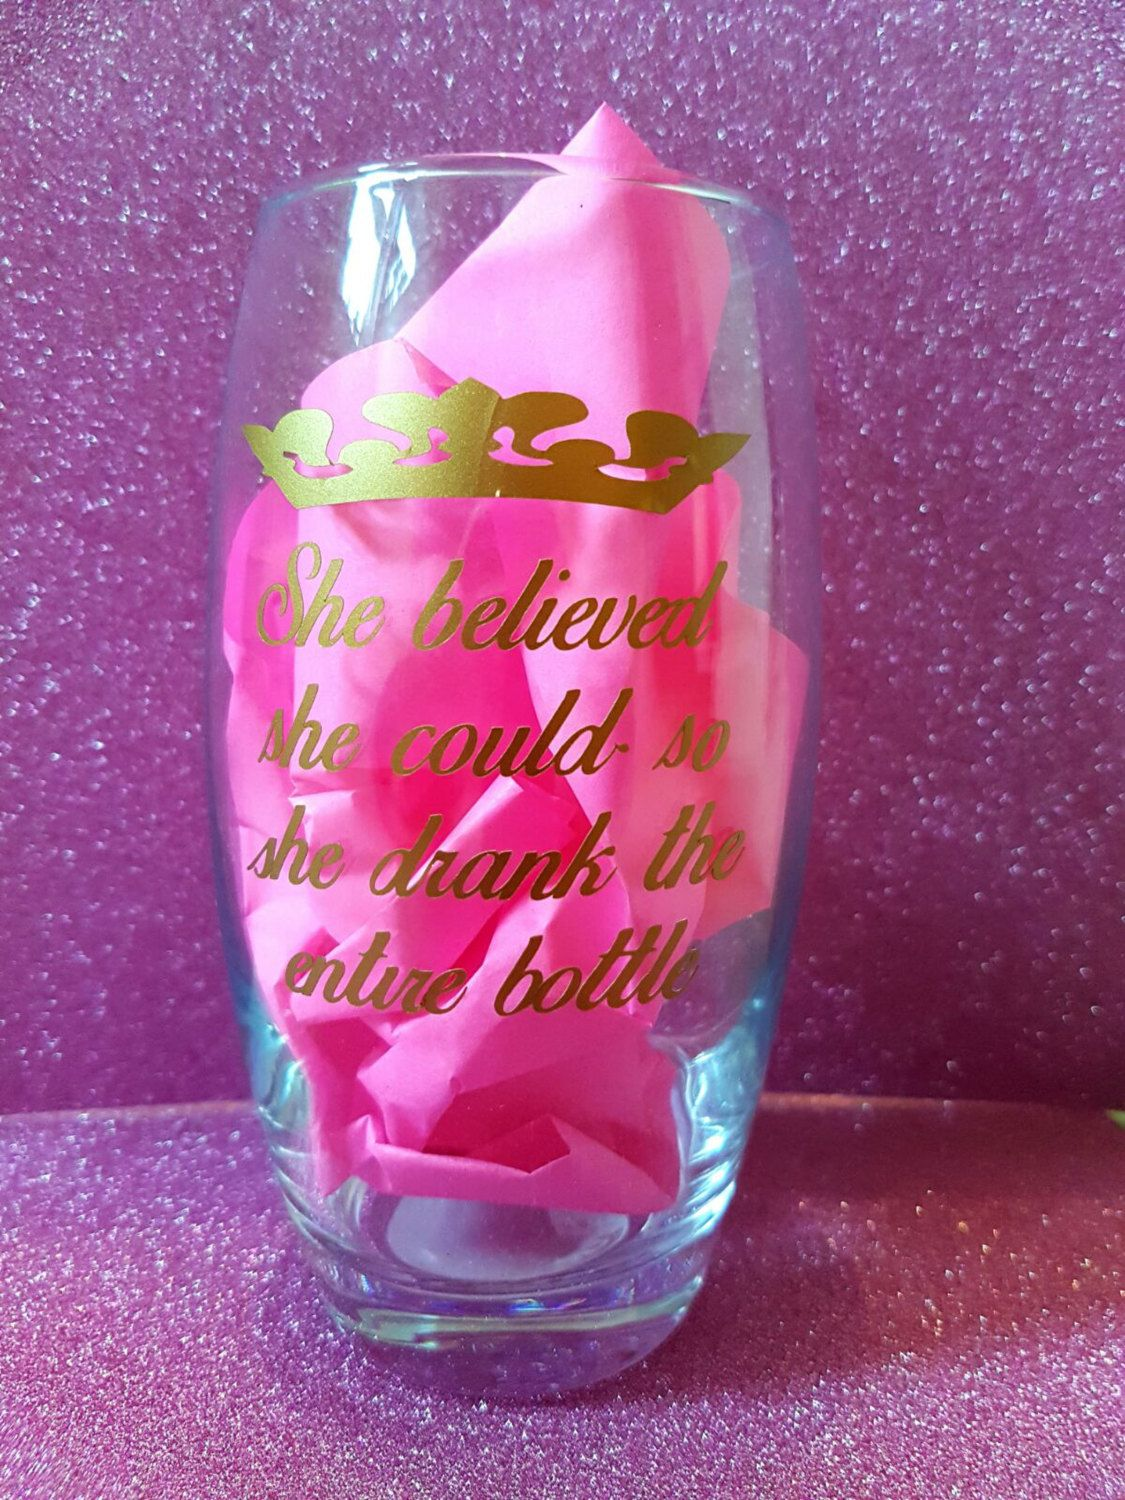 Wine glass funny quotes mom Mother's Day super power family gift novinophopia novelty wedding Christmas valentines gifts handmade by LoveartsGifts on Etsy